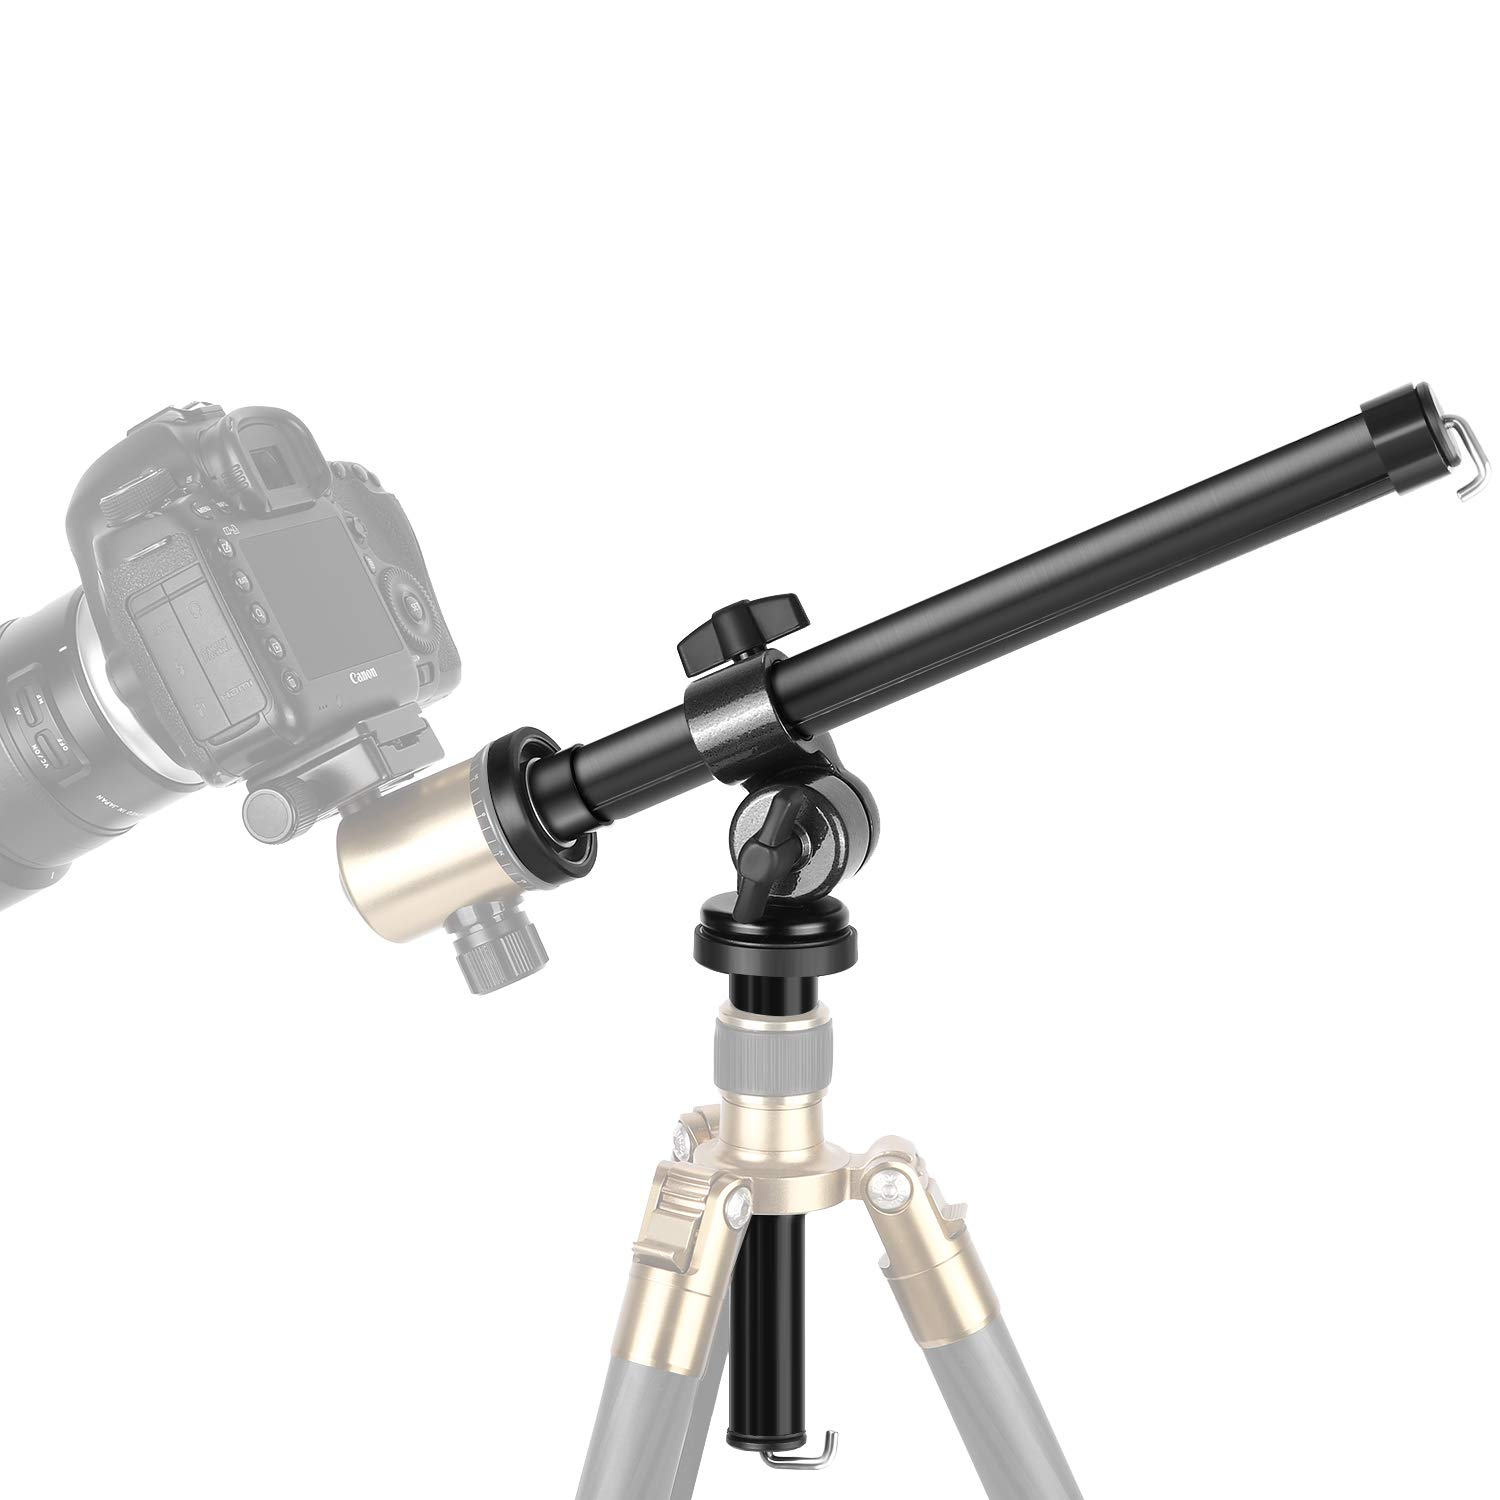 Neewer Camera Tripod Boom Arm: External Multi-Angle Center Column Extension Arm for Studio Outdoor Macro Over Head Shooting (32cm Length, 5kg Load Capacity, 25mm Tube Diameter, Ball Head Not Included)